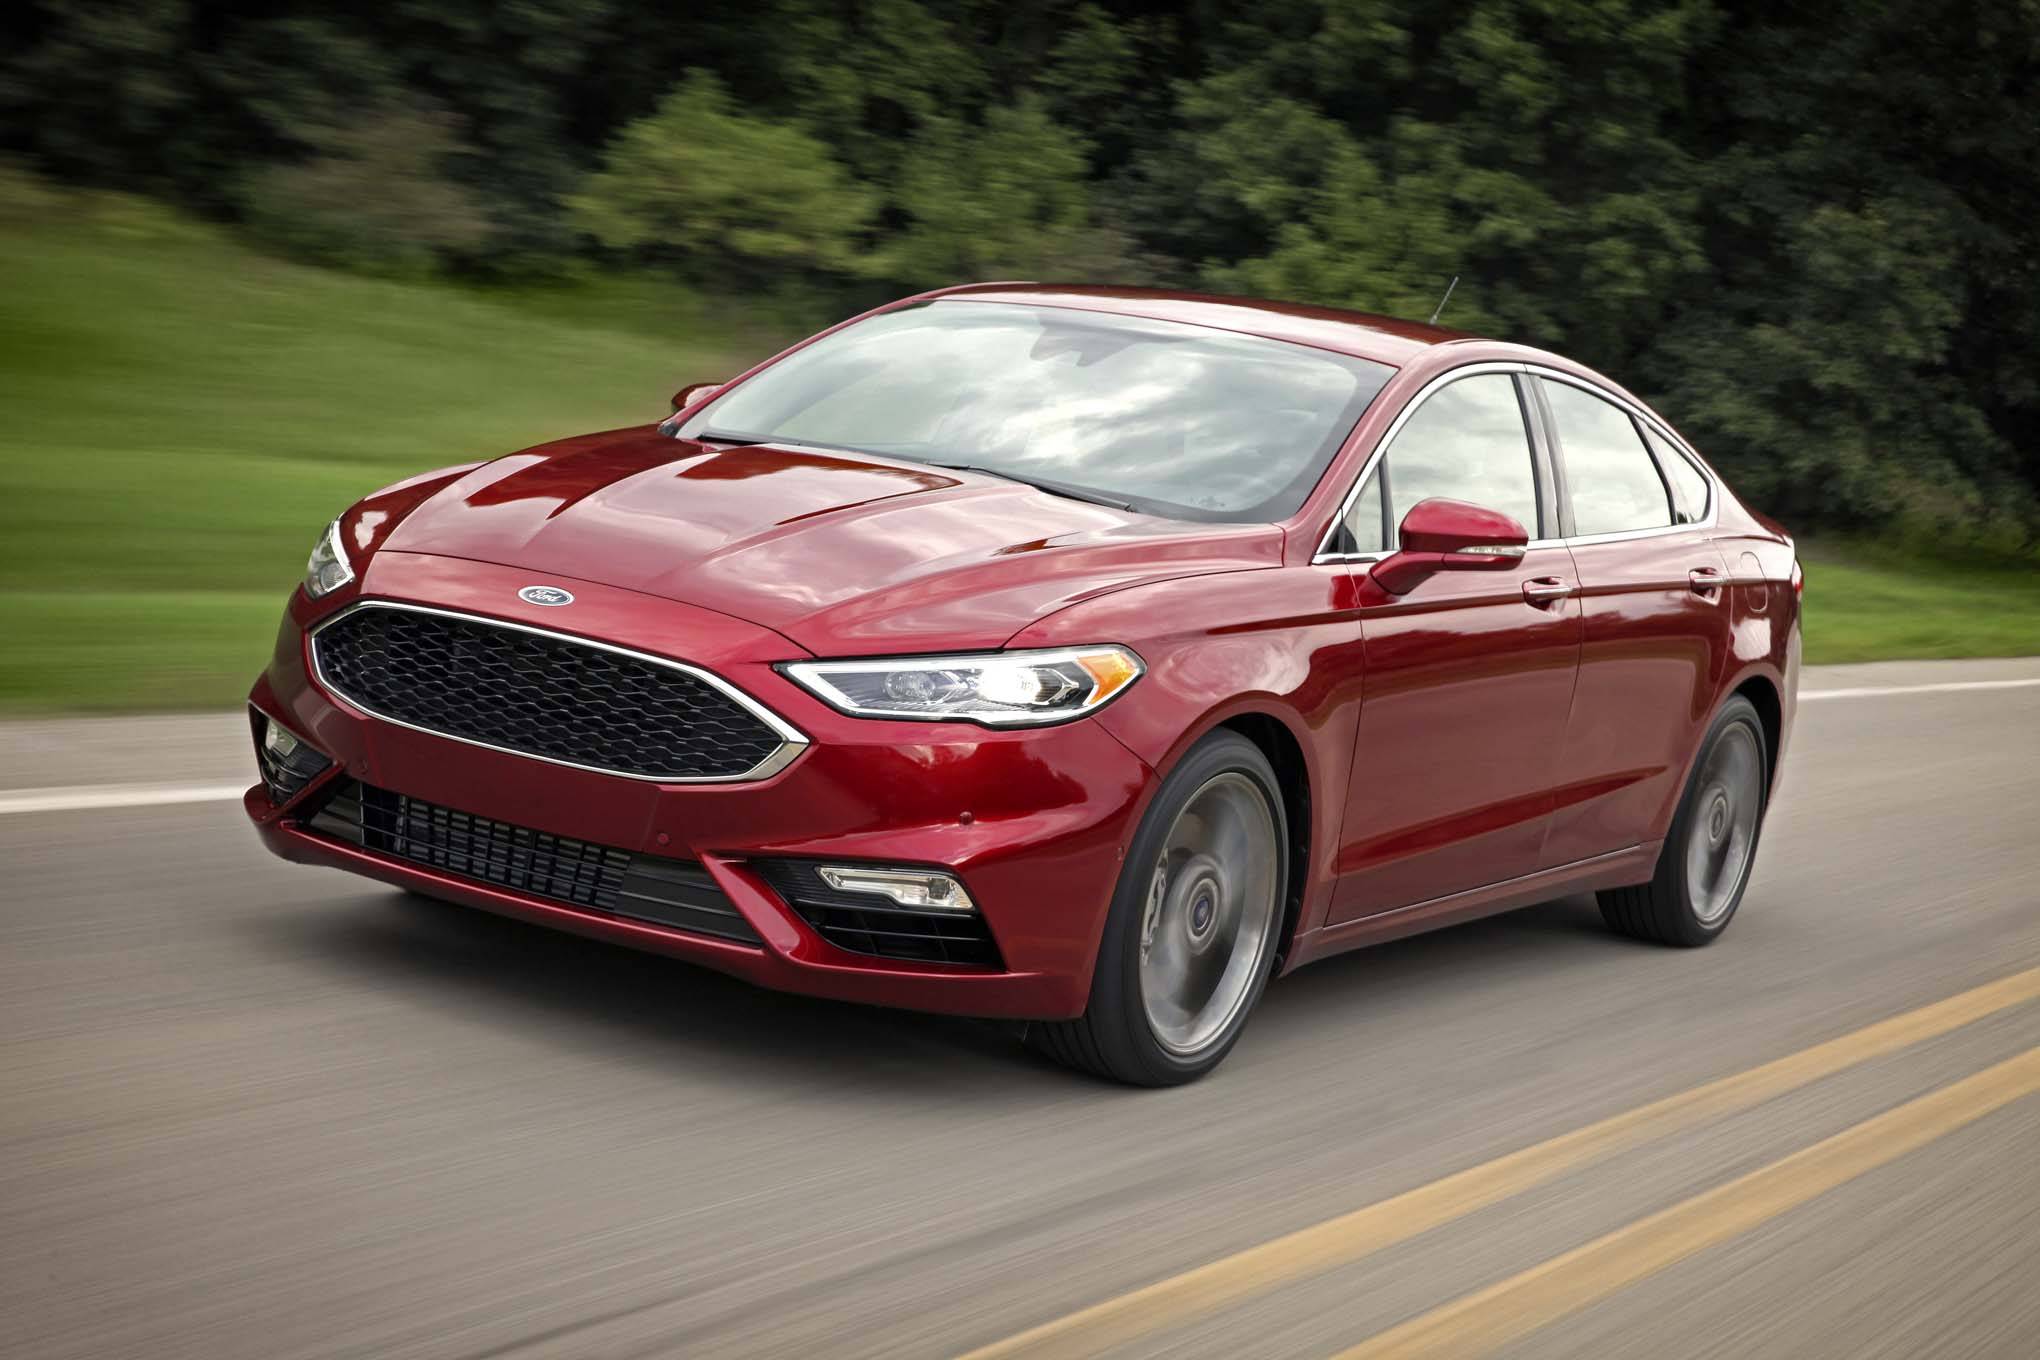 2017 Ford Fusion Refreshed For Detroit Adds 325 Hp V6 Sport Model Headlight Relay 92 Chevy Pickup Besides 77 Truck Wiring Diagram 18 119